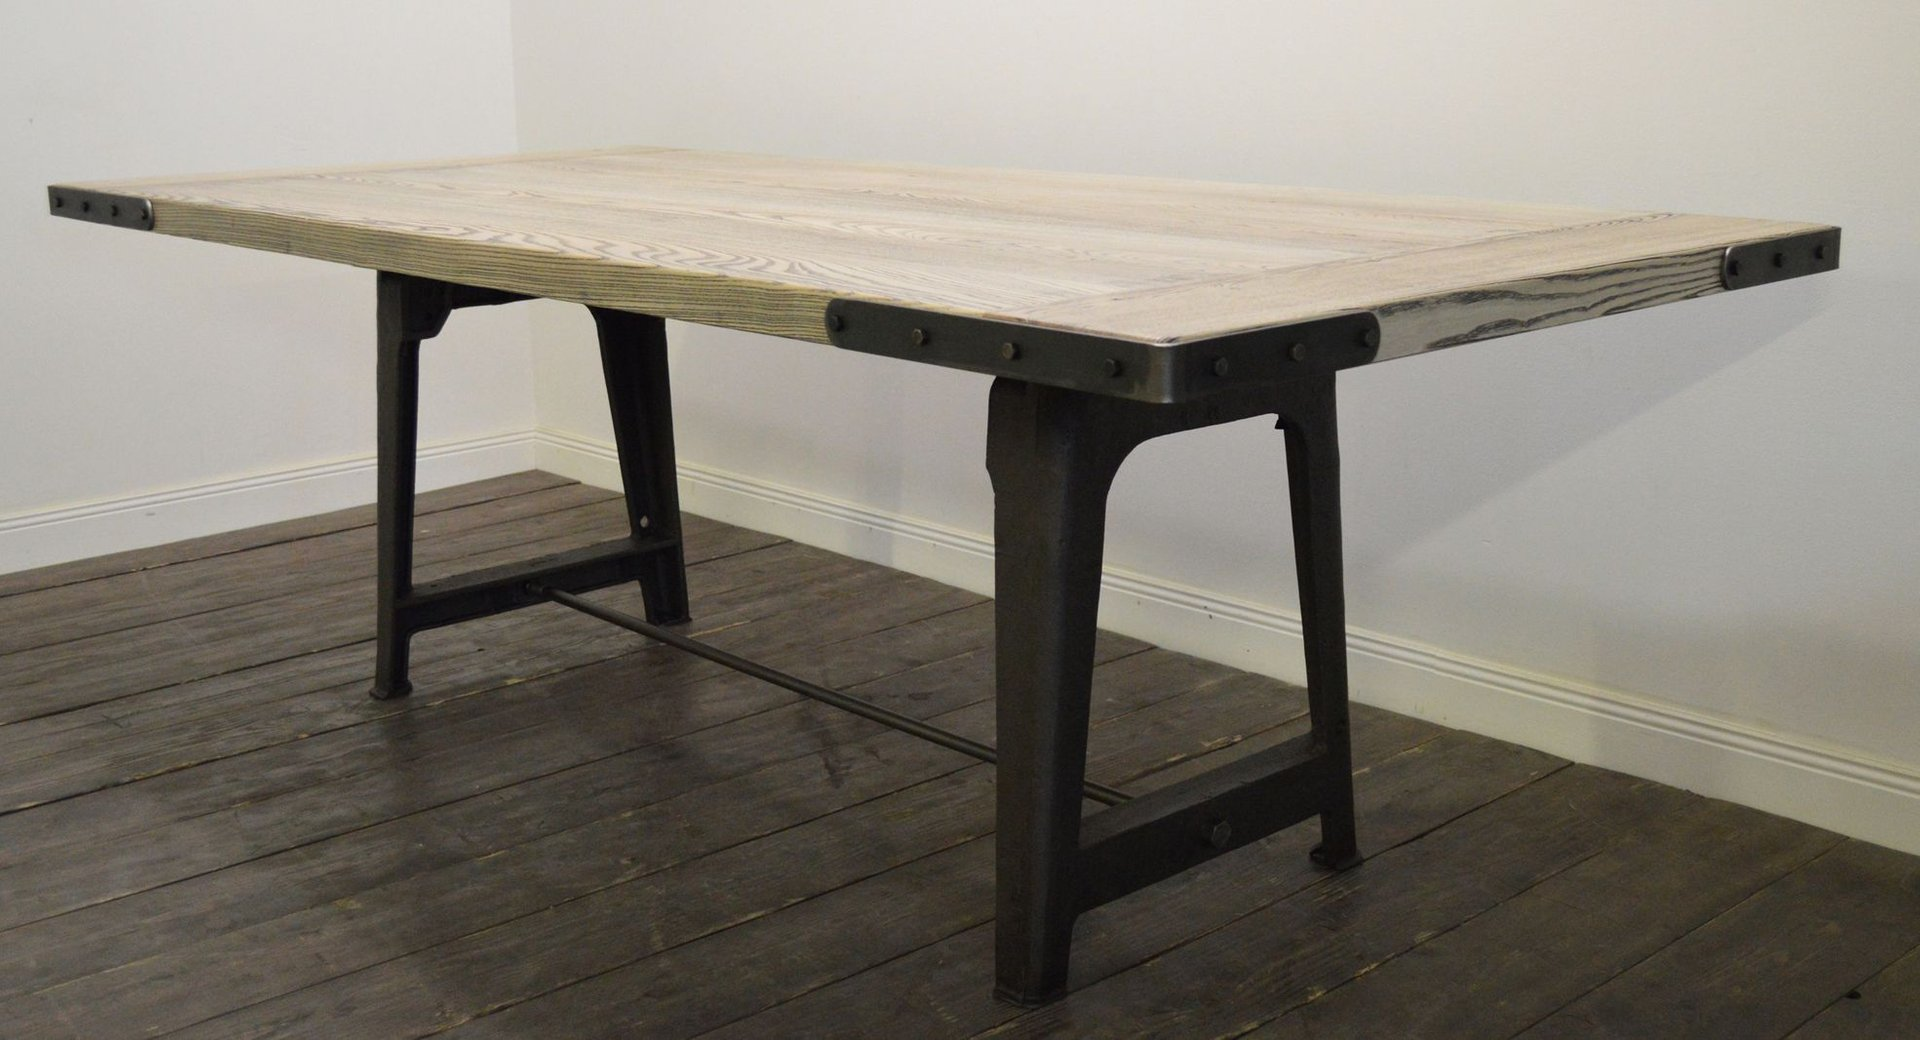 Grande table de salle manger industrielle en fr ne en for Table salle manger originale